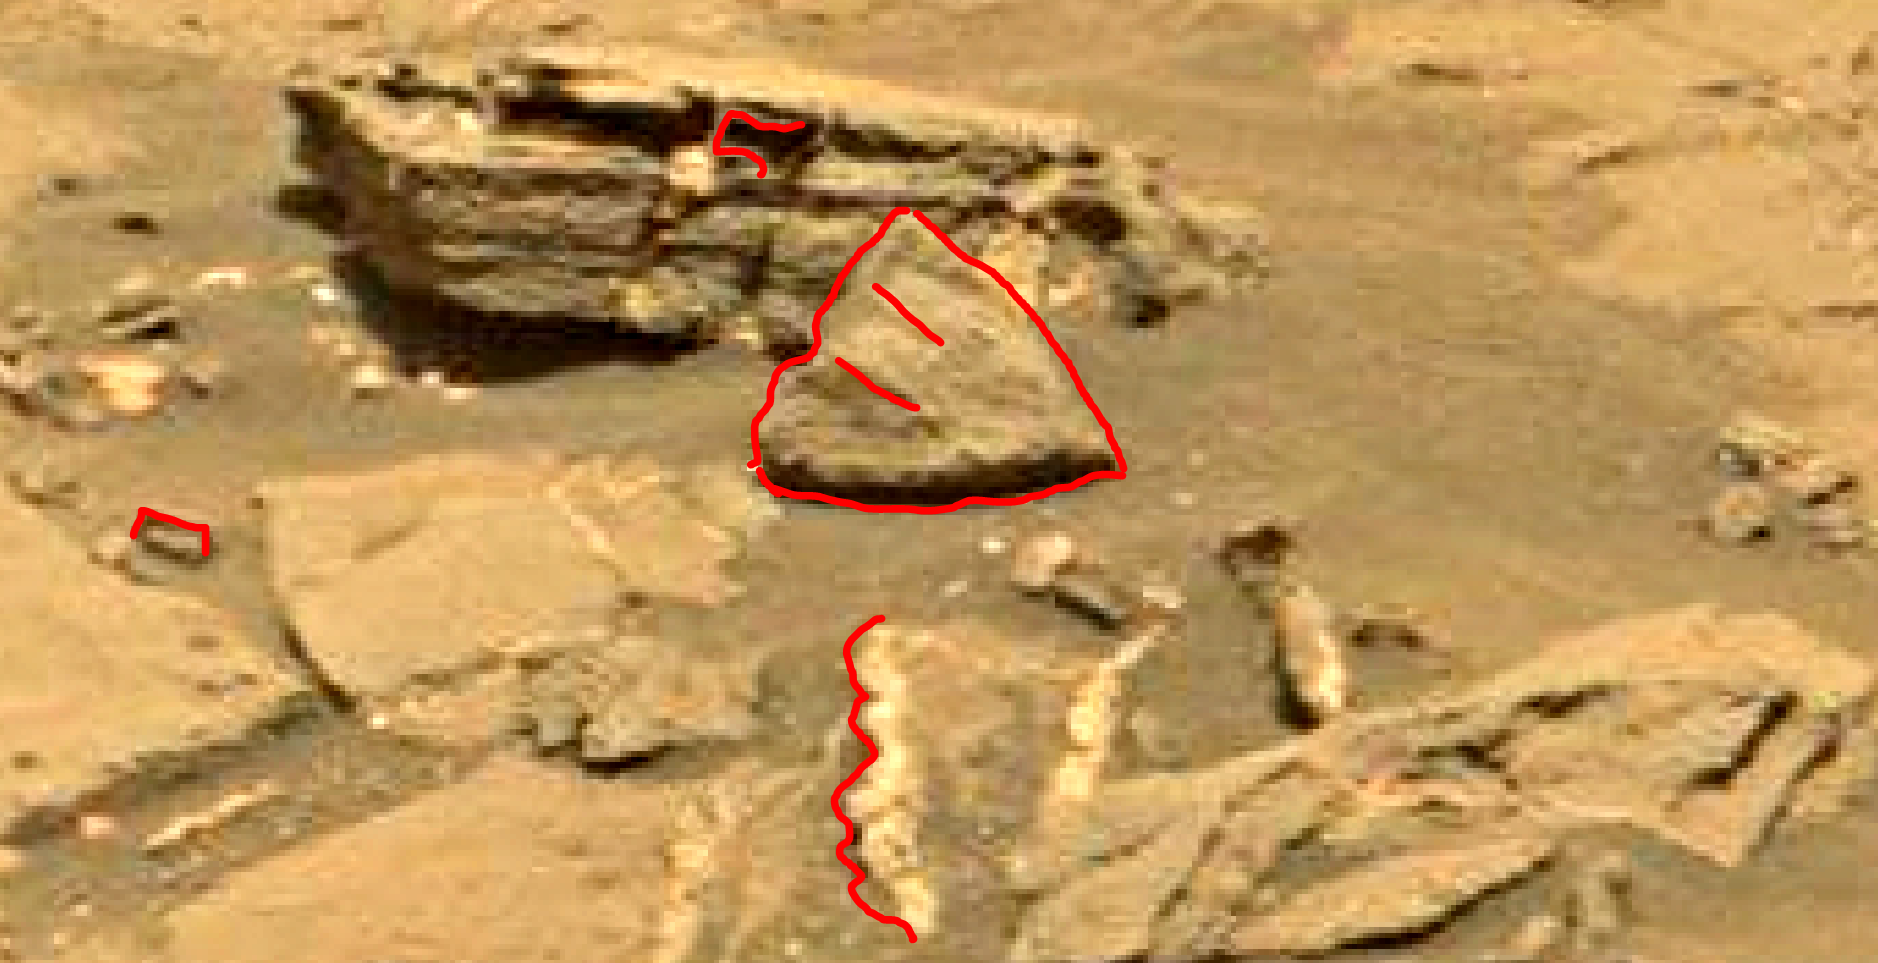 mars sol 1353 anomaly-artifacts 25a was life on mars